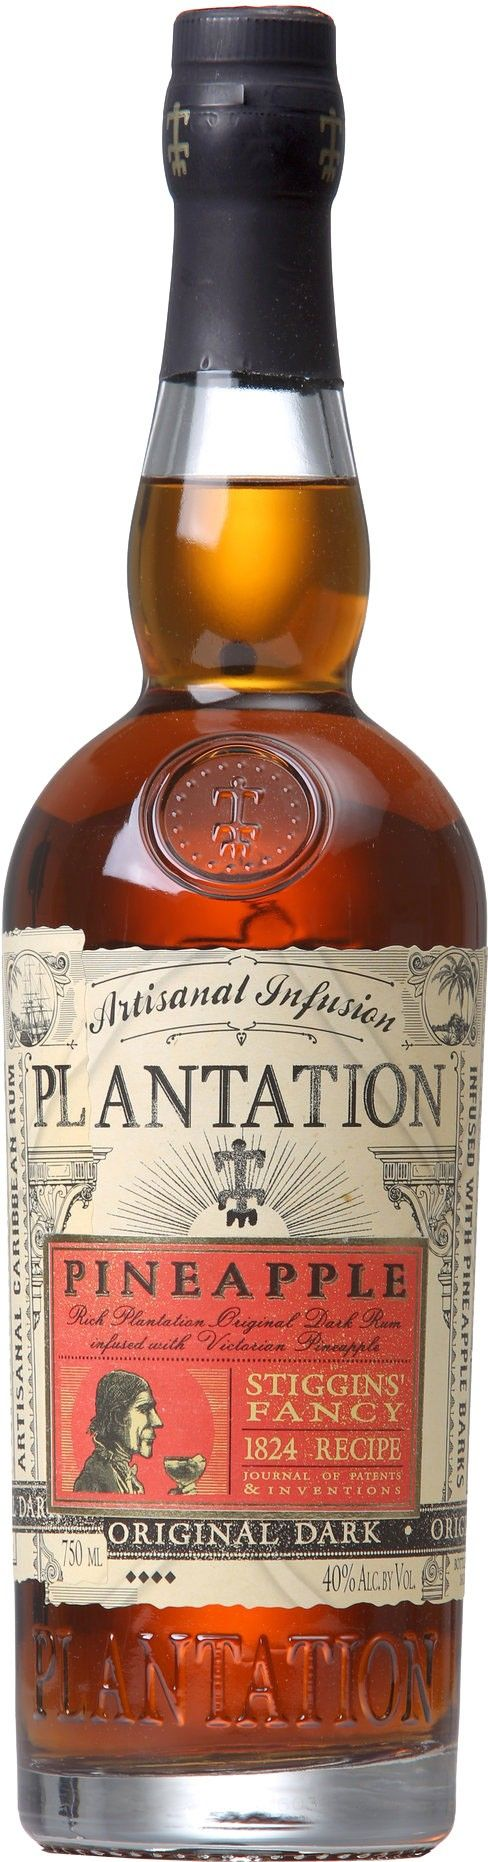 Plantation Stiggins' Fancy Dark Pineapple Rum Food